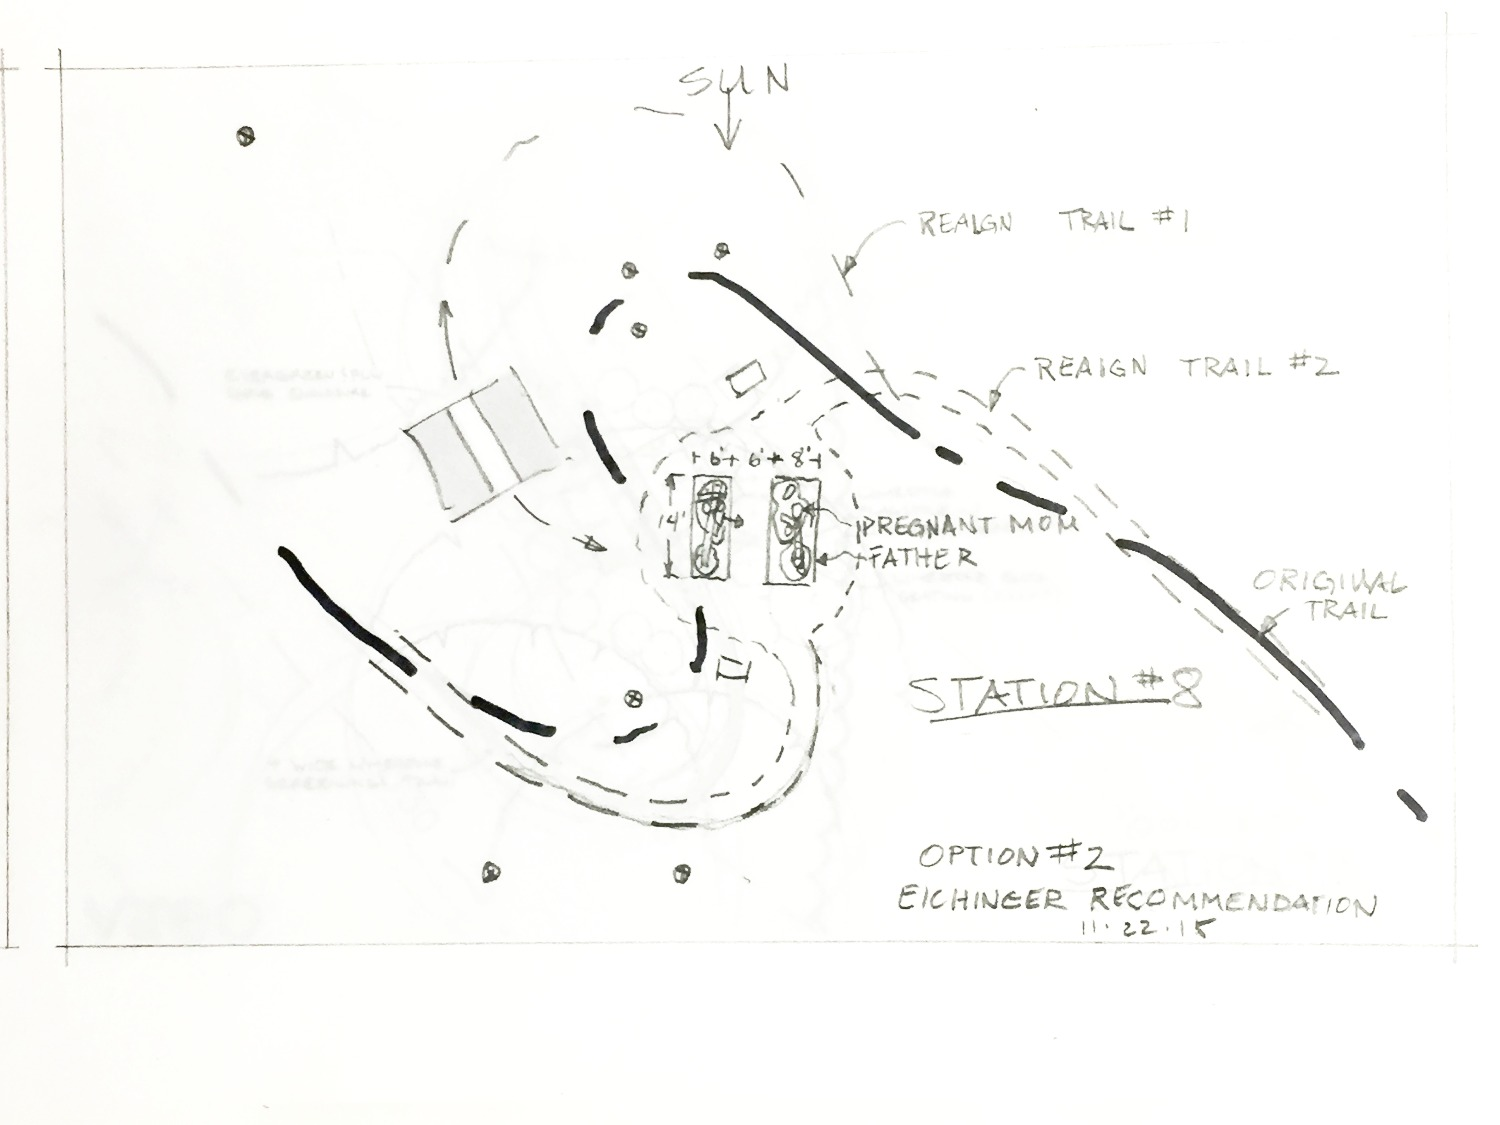 Overhead sketch for Station #6